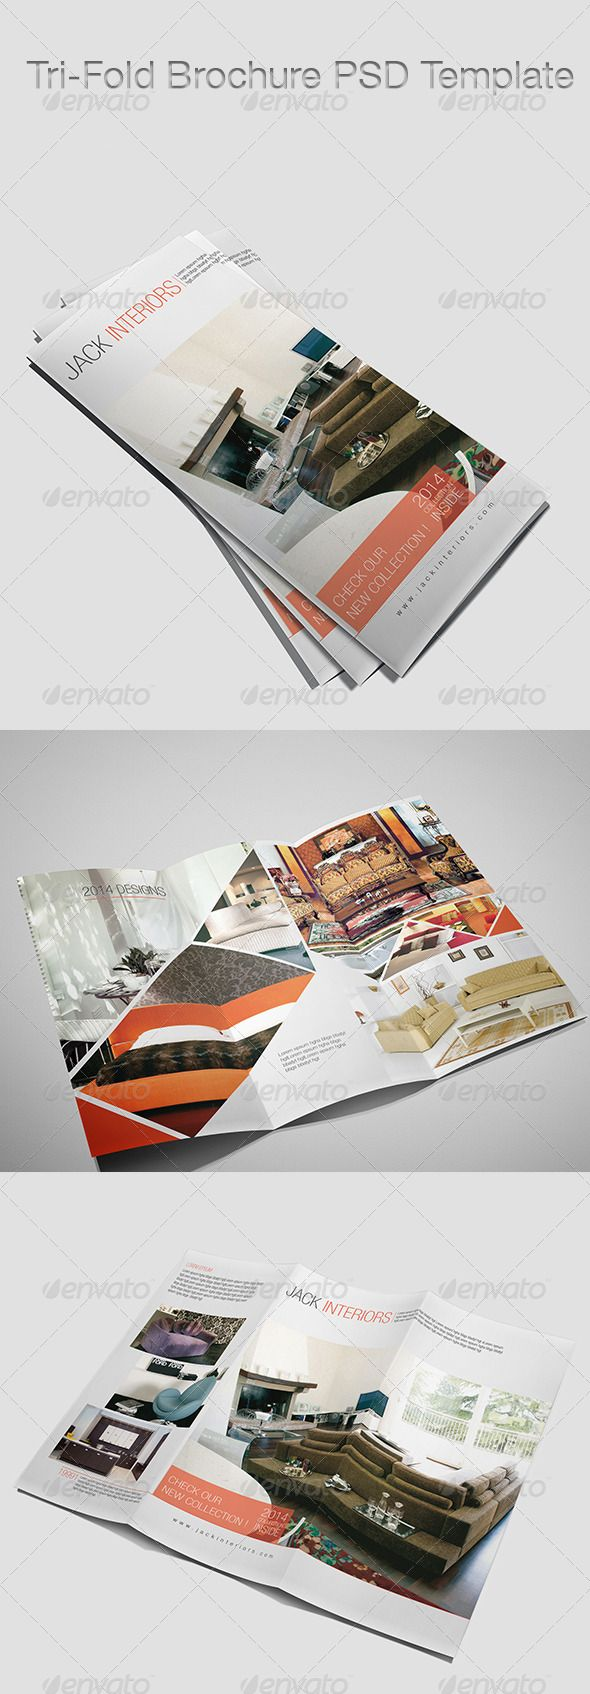 Tri-Fold Brochure Template #GraphicRiver Tri-Fold Brochure Template Compatibility: - Adobe Photoshop CS4, CS5, CS6 Content: - Tri-Fold Brochure one page - Very easy to change or edit info - Fully layered cmyk - ready for printing - easy to add your own photos Font Used: - helvetica you can find fonts here: - .myfonts /fonts/adobe/helvetica/ for any help you can feel free to message me directly :)) Created: 20August13 GraphicsFilesIncluded: PhotoshopPSD Layered: Yes MinimumAdobeCSVersion: CS4…